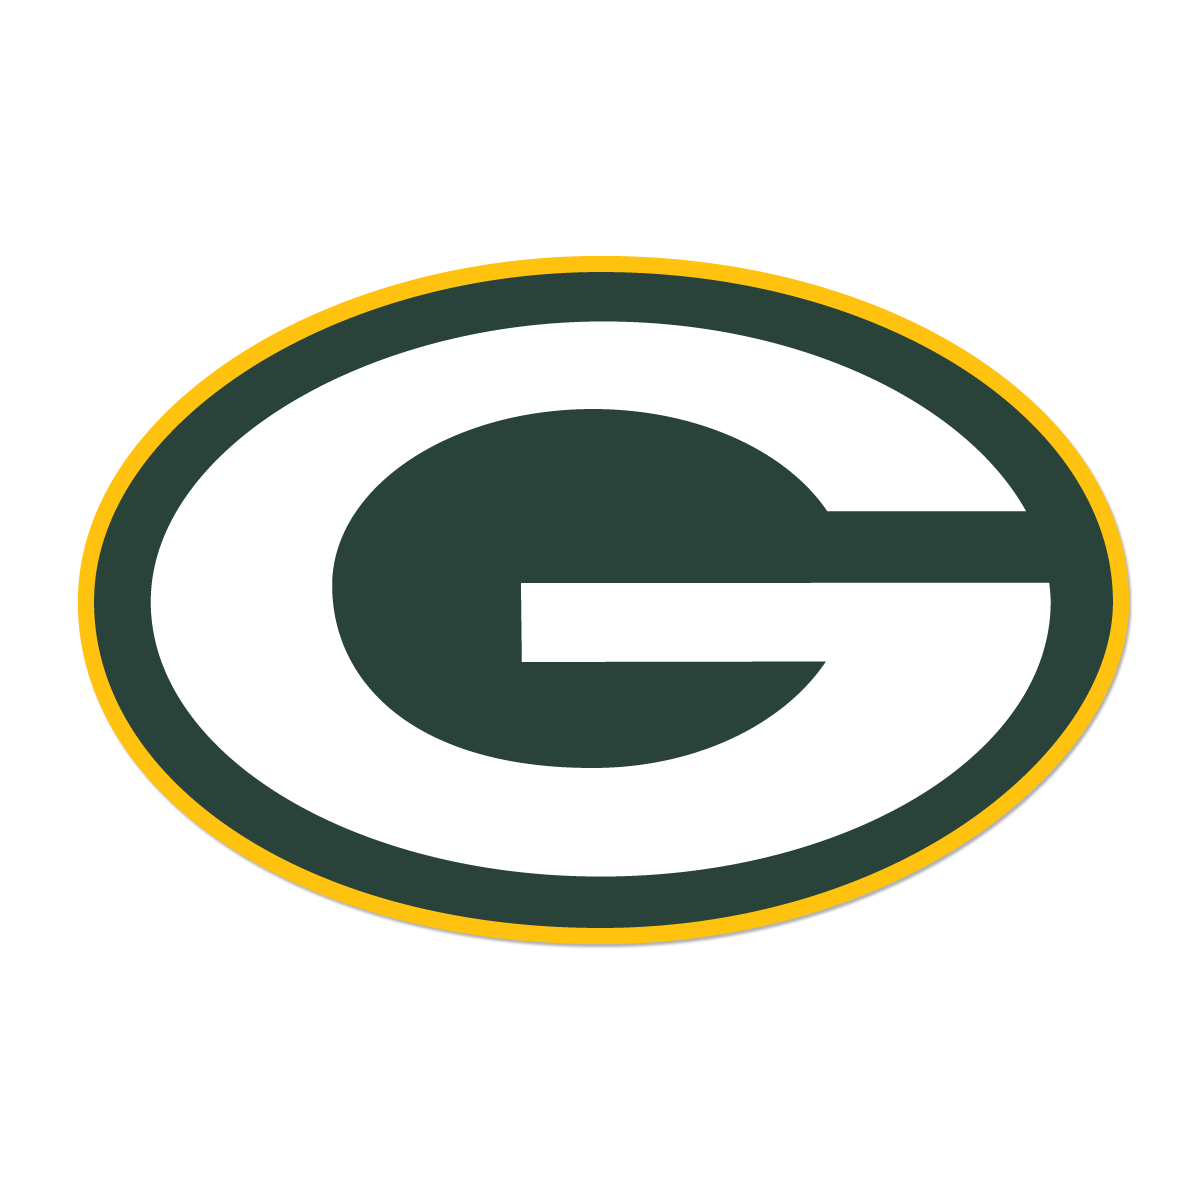 Green Bay Packers Logo - http://www.packers.com